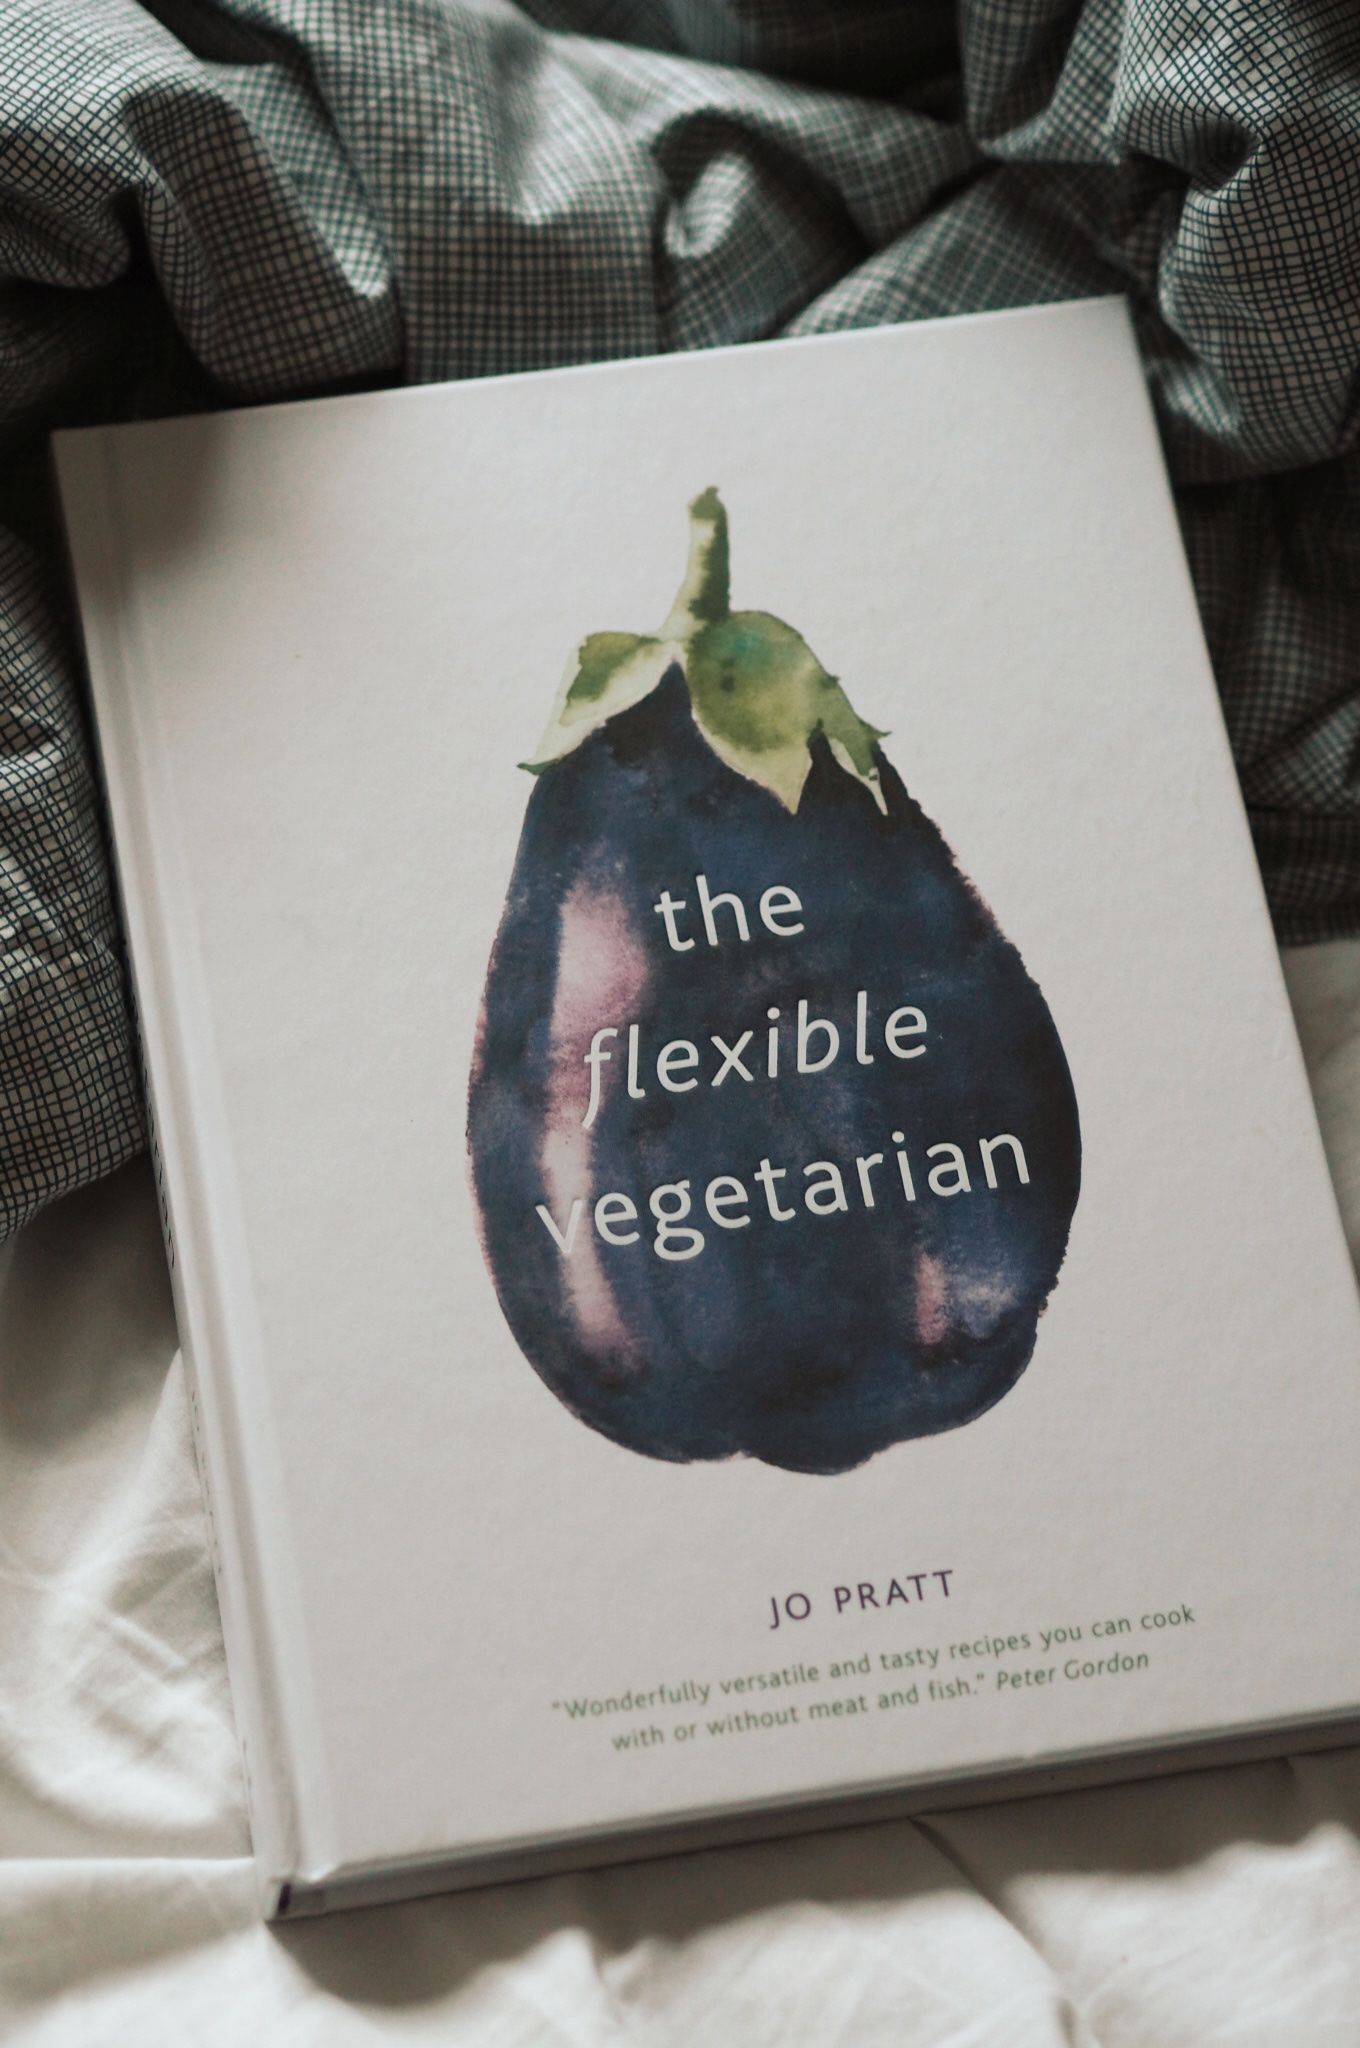 A white-covered book entitled 'The Flexible Vegetarian' sits on white bed sheets. The book has a large image of an aubergine or eggplant on the cover and is written by Jo Pratt.